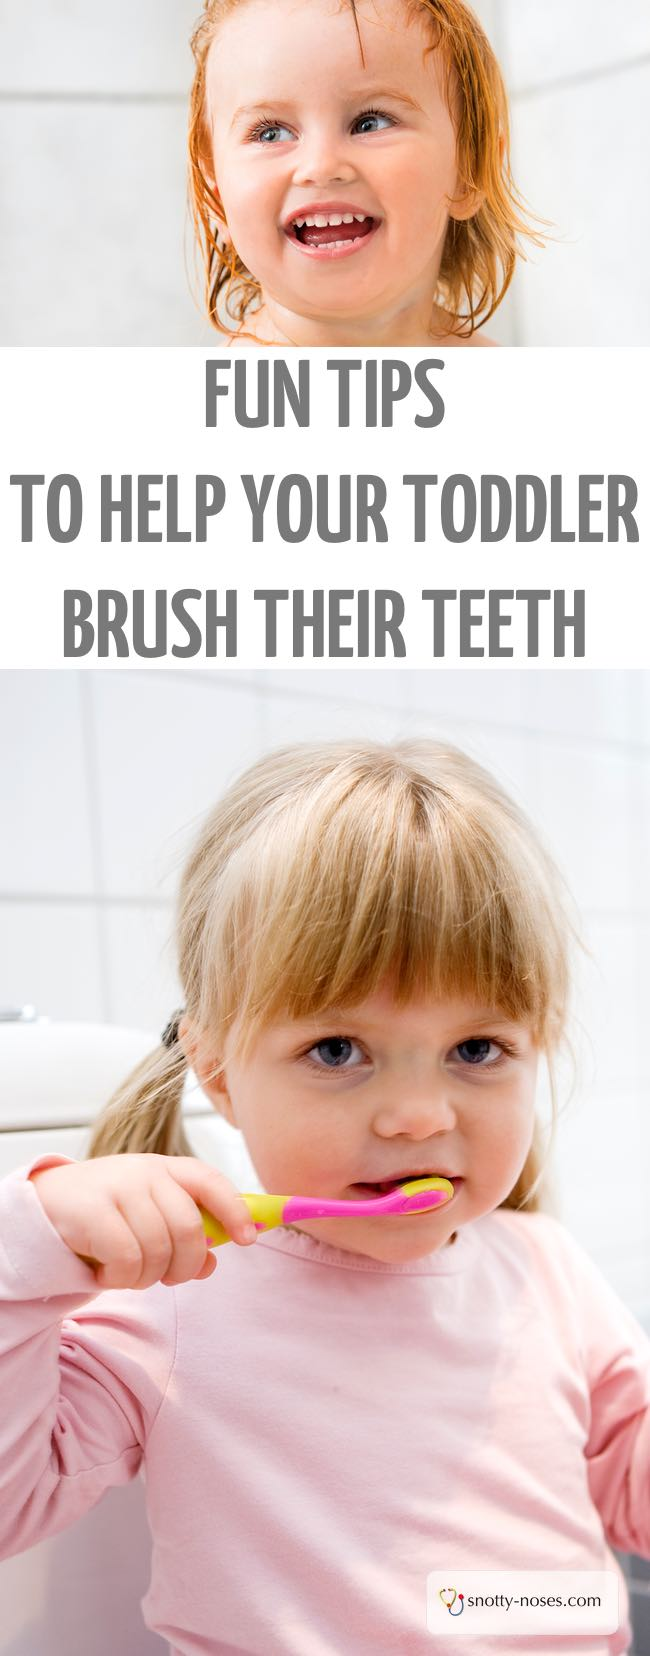 Fun Tips to Help you Brush Your Toddler's Teeth. Brushing your toddler's teeth can be so frustrating, here are 10 great tips to help. I love the last one! #toddler #parenting